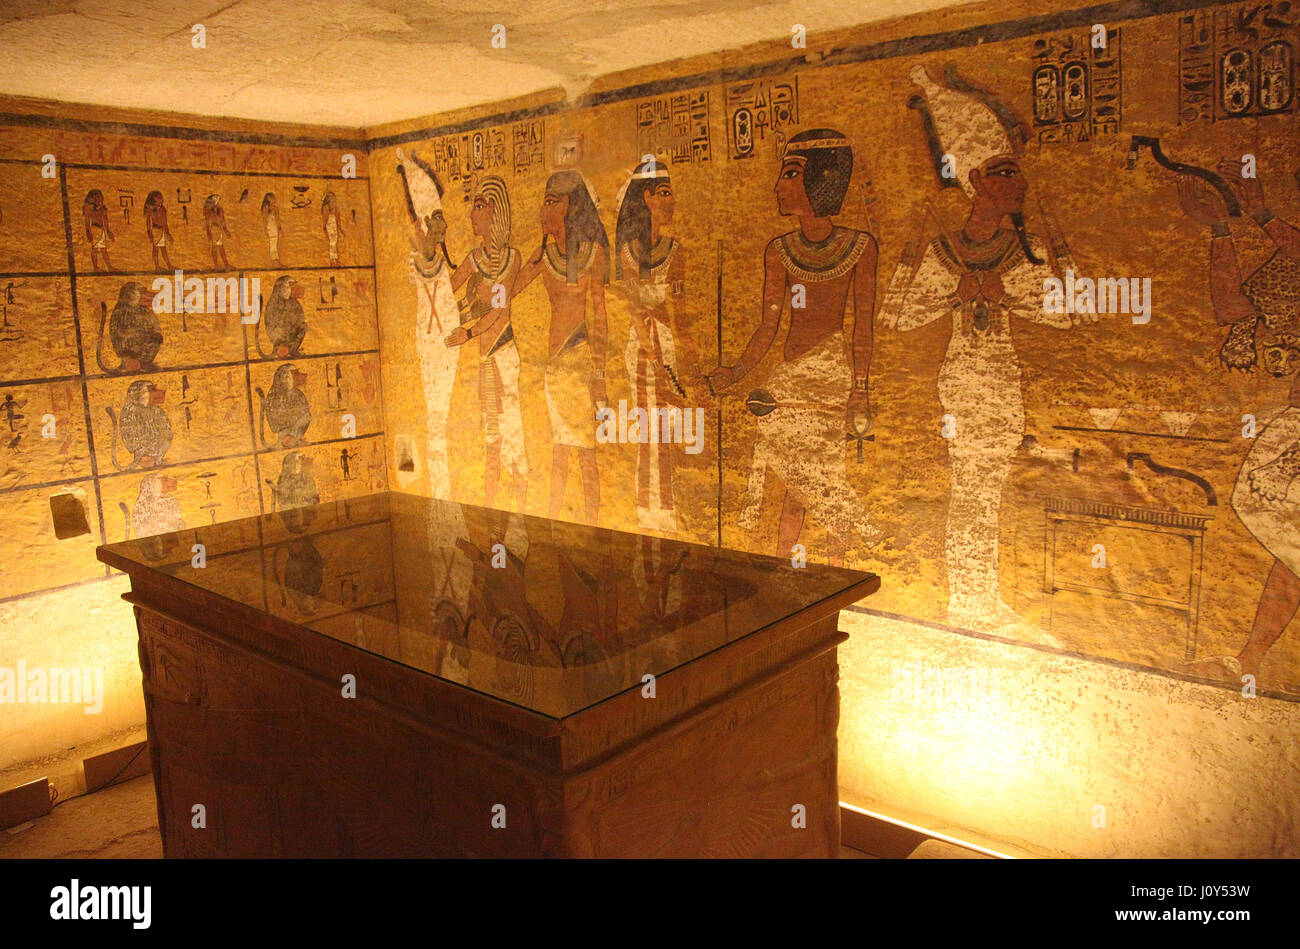 Replica tomb of Pharaoh Tutankhamun which has been built on the west bank at Luxor - Stock Image